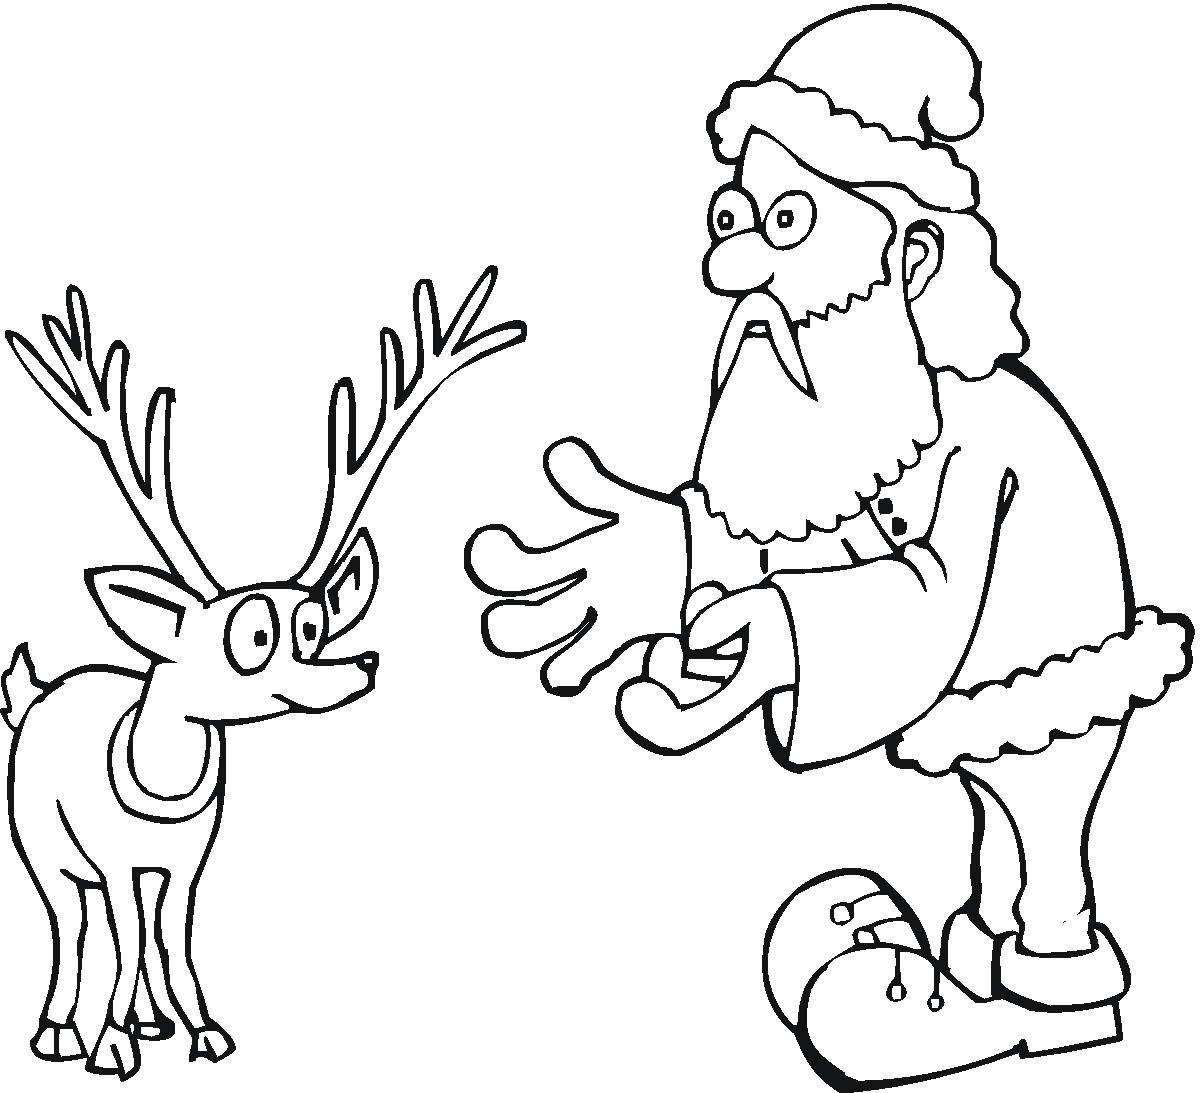 coloring page from santas workshopws santa